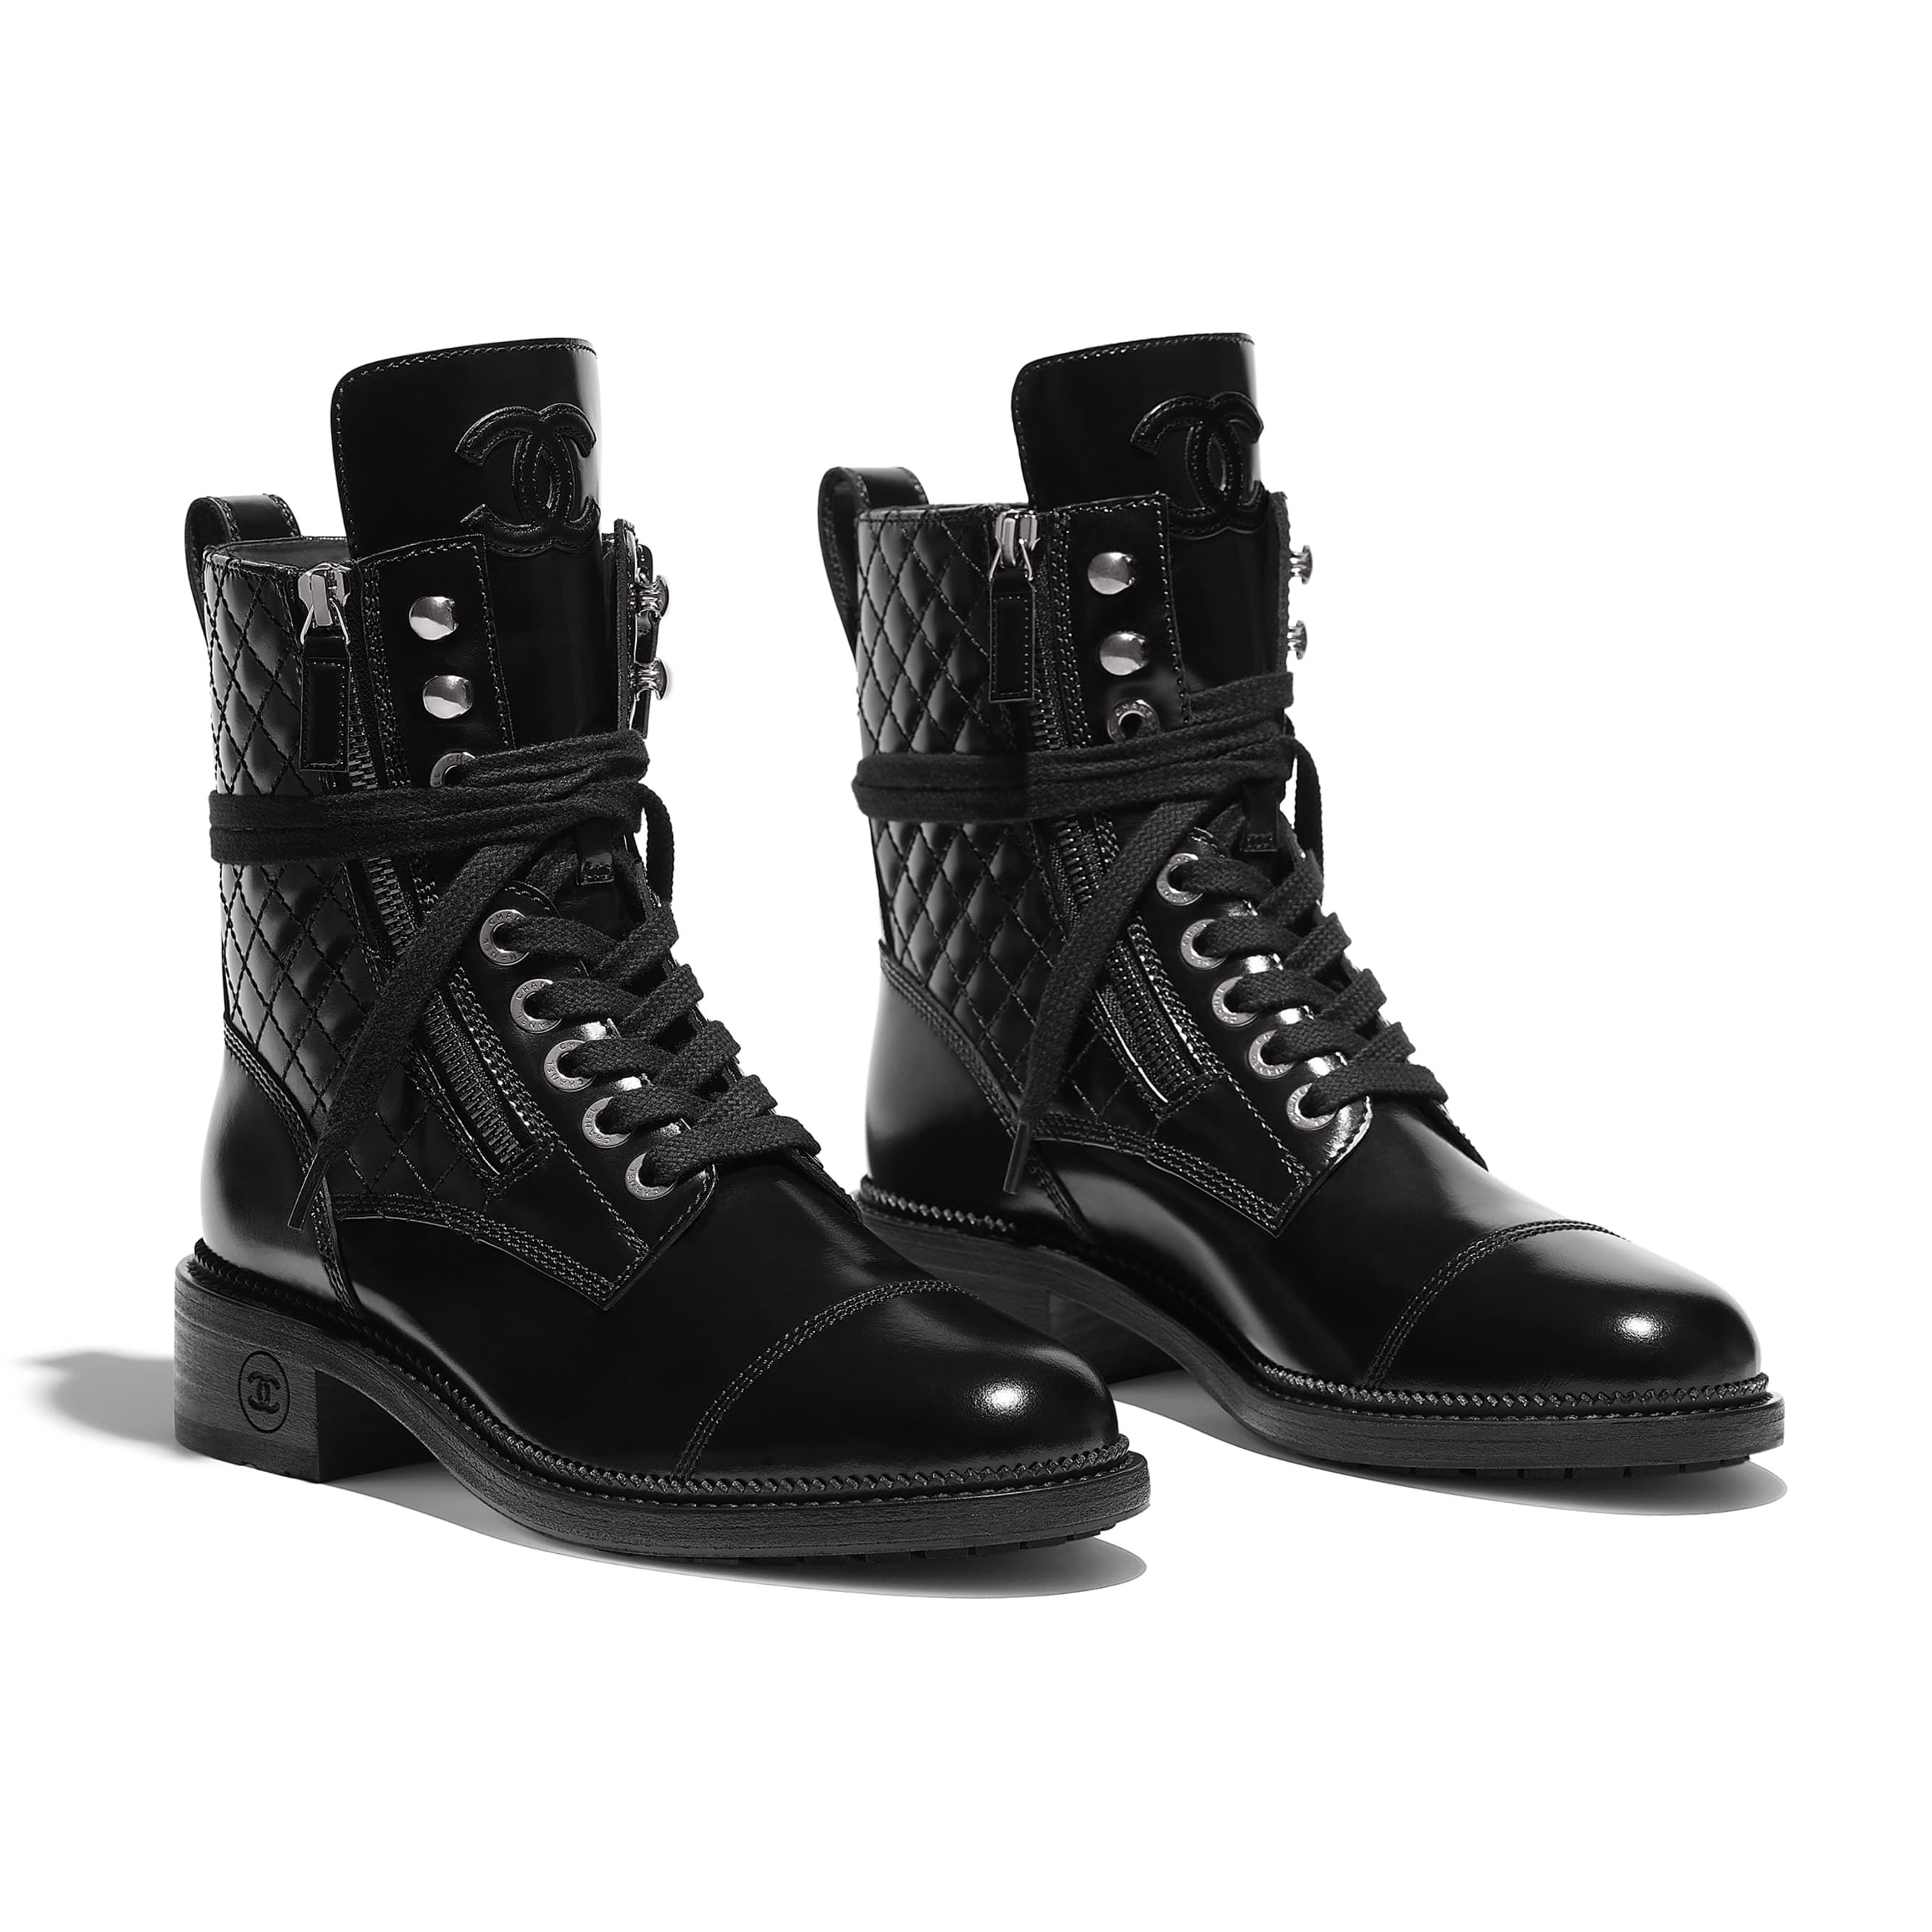 Boots, Lace up combat boots, Chanel